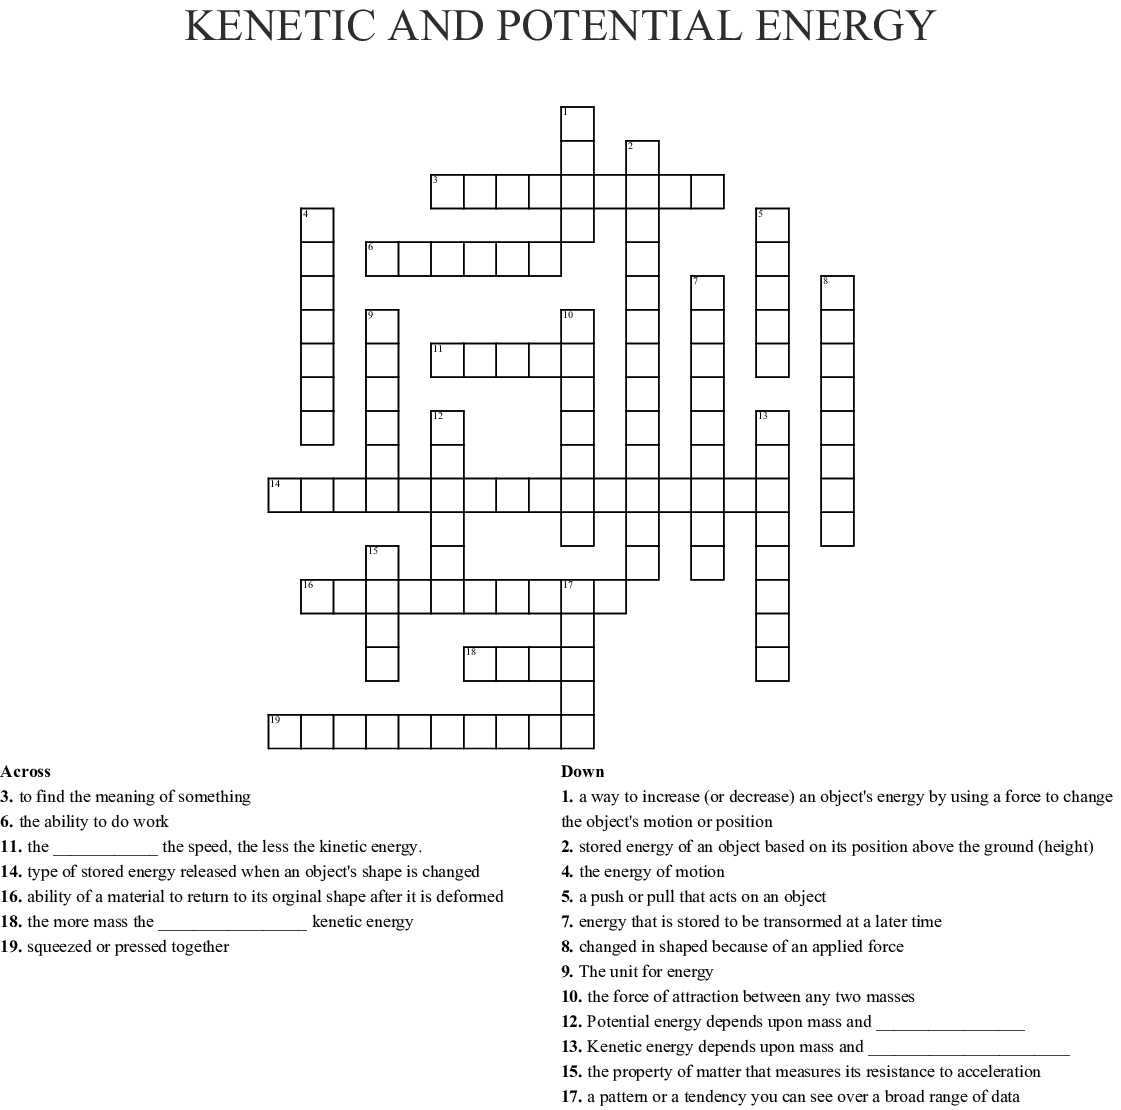 Kenetic And Potential Energy Crossword